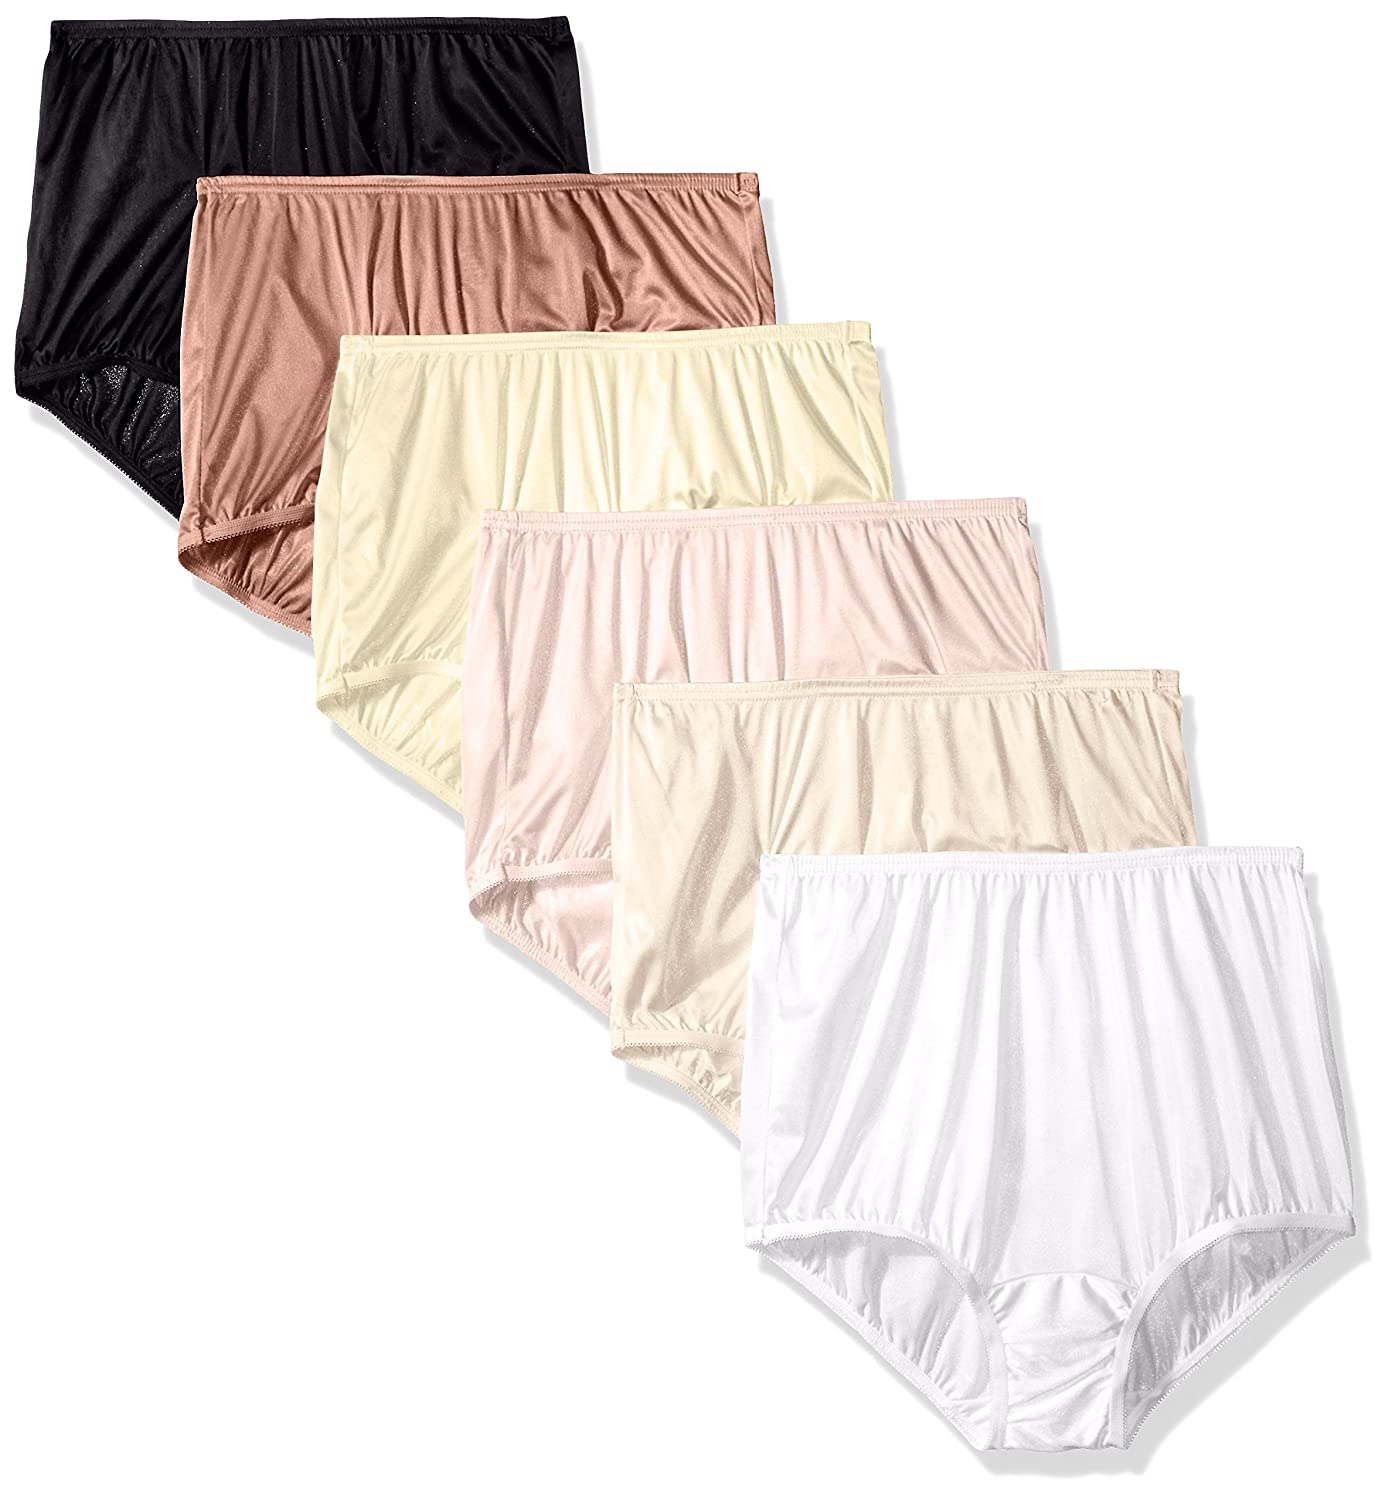 Vanity Fair Womens 6 Pack Perfectly Yours Ravissant Tailored Brief Panty 15113